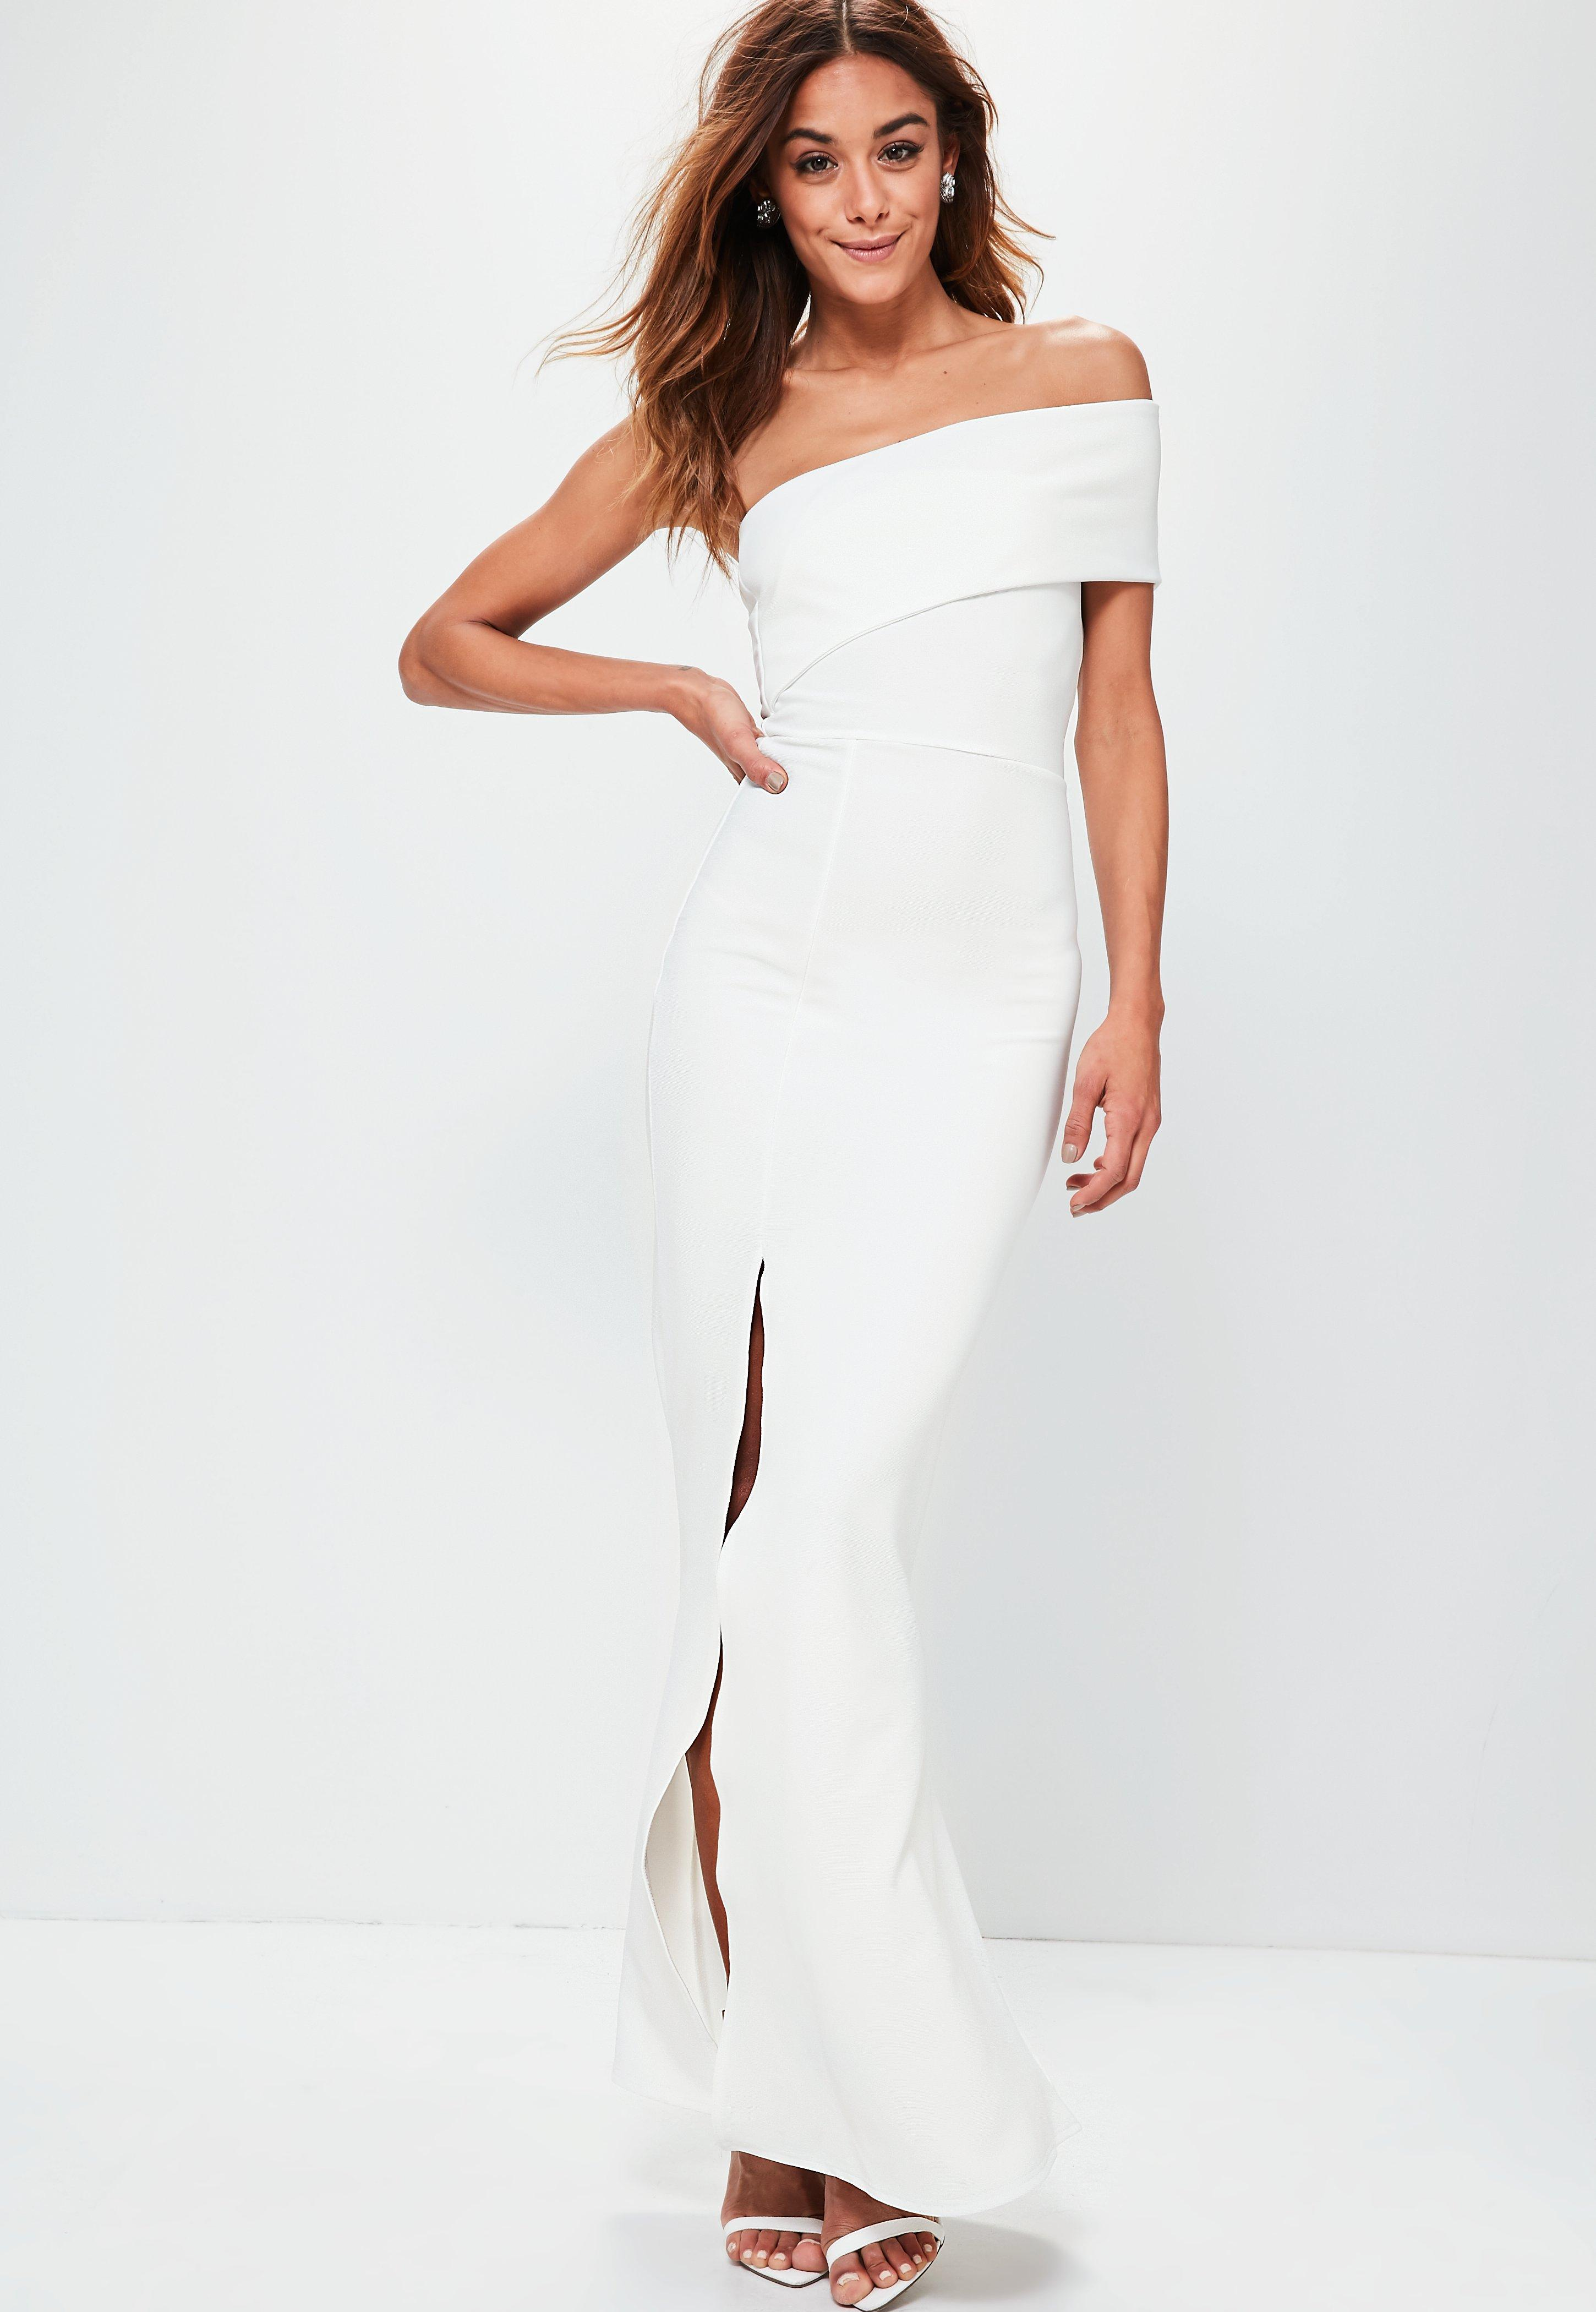 5426c5f7edd Gallery. Previously sold at: Missguided · Women's White Dresses